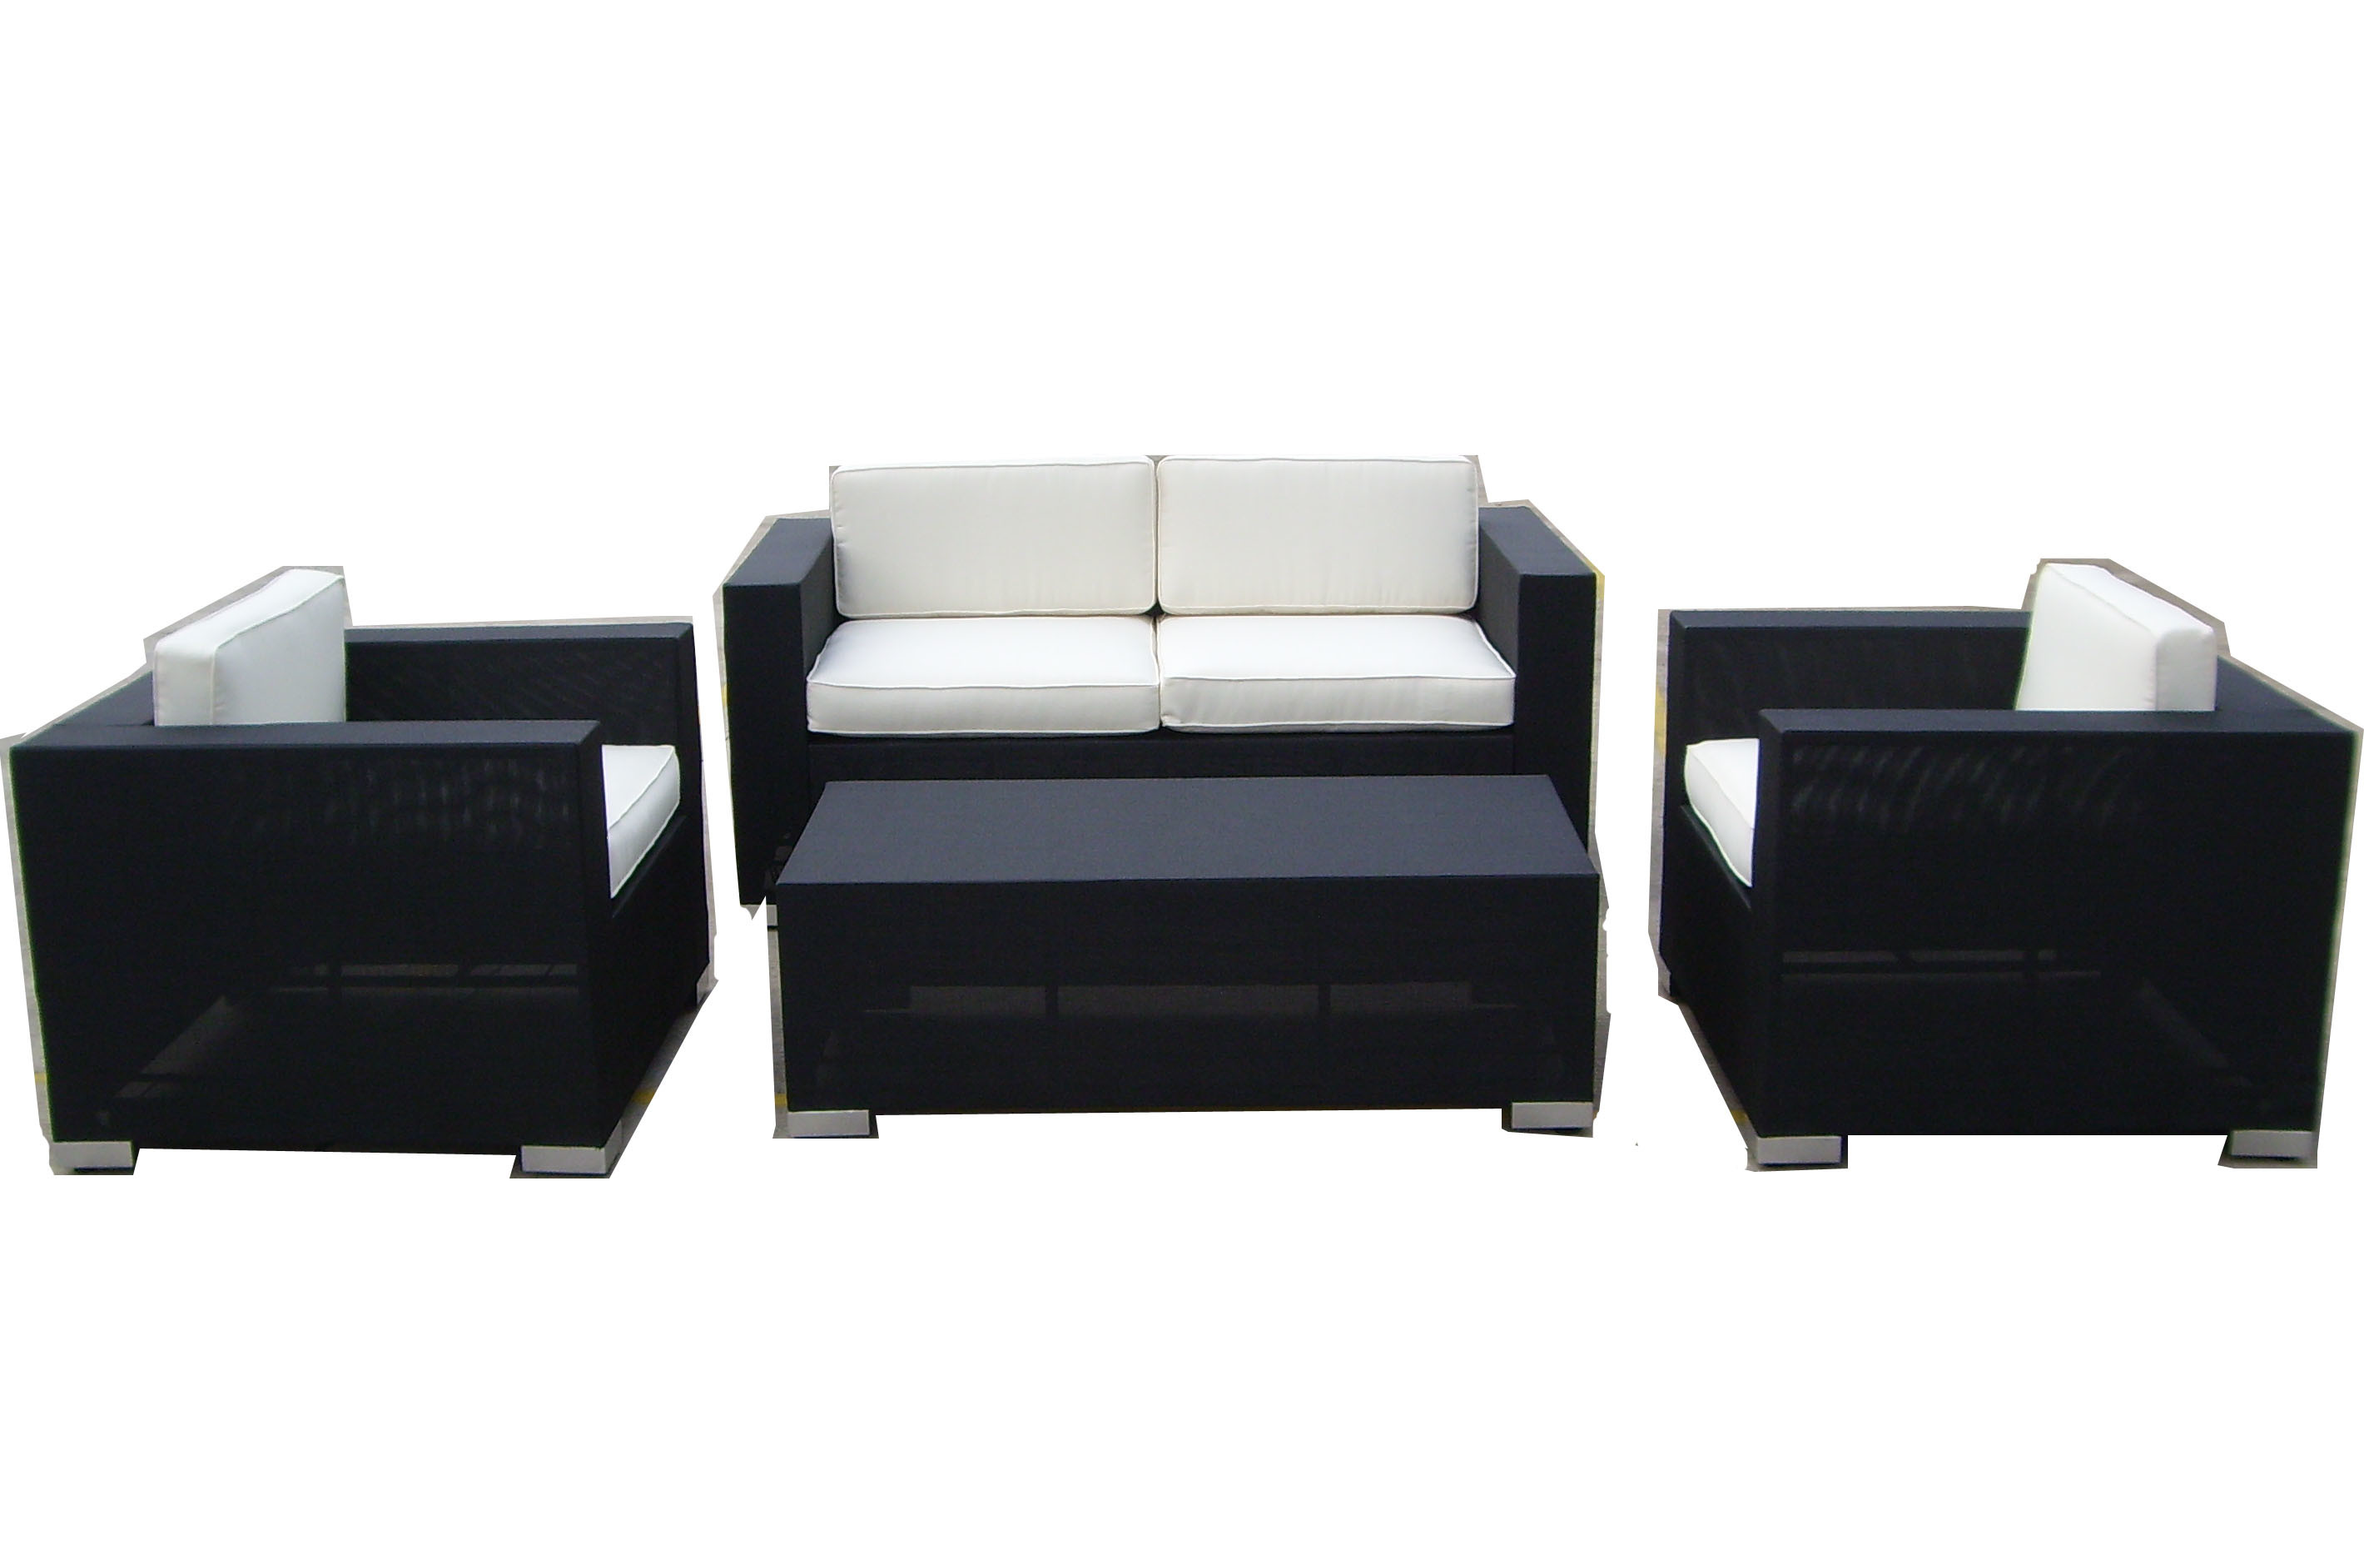 china rattan sofa set china rattan furniture rattan sofa. Black Bedroom Furniture Sets. Home Design Ideas